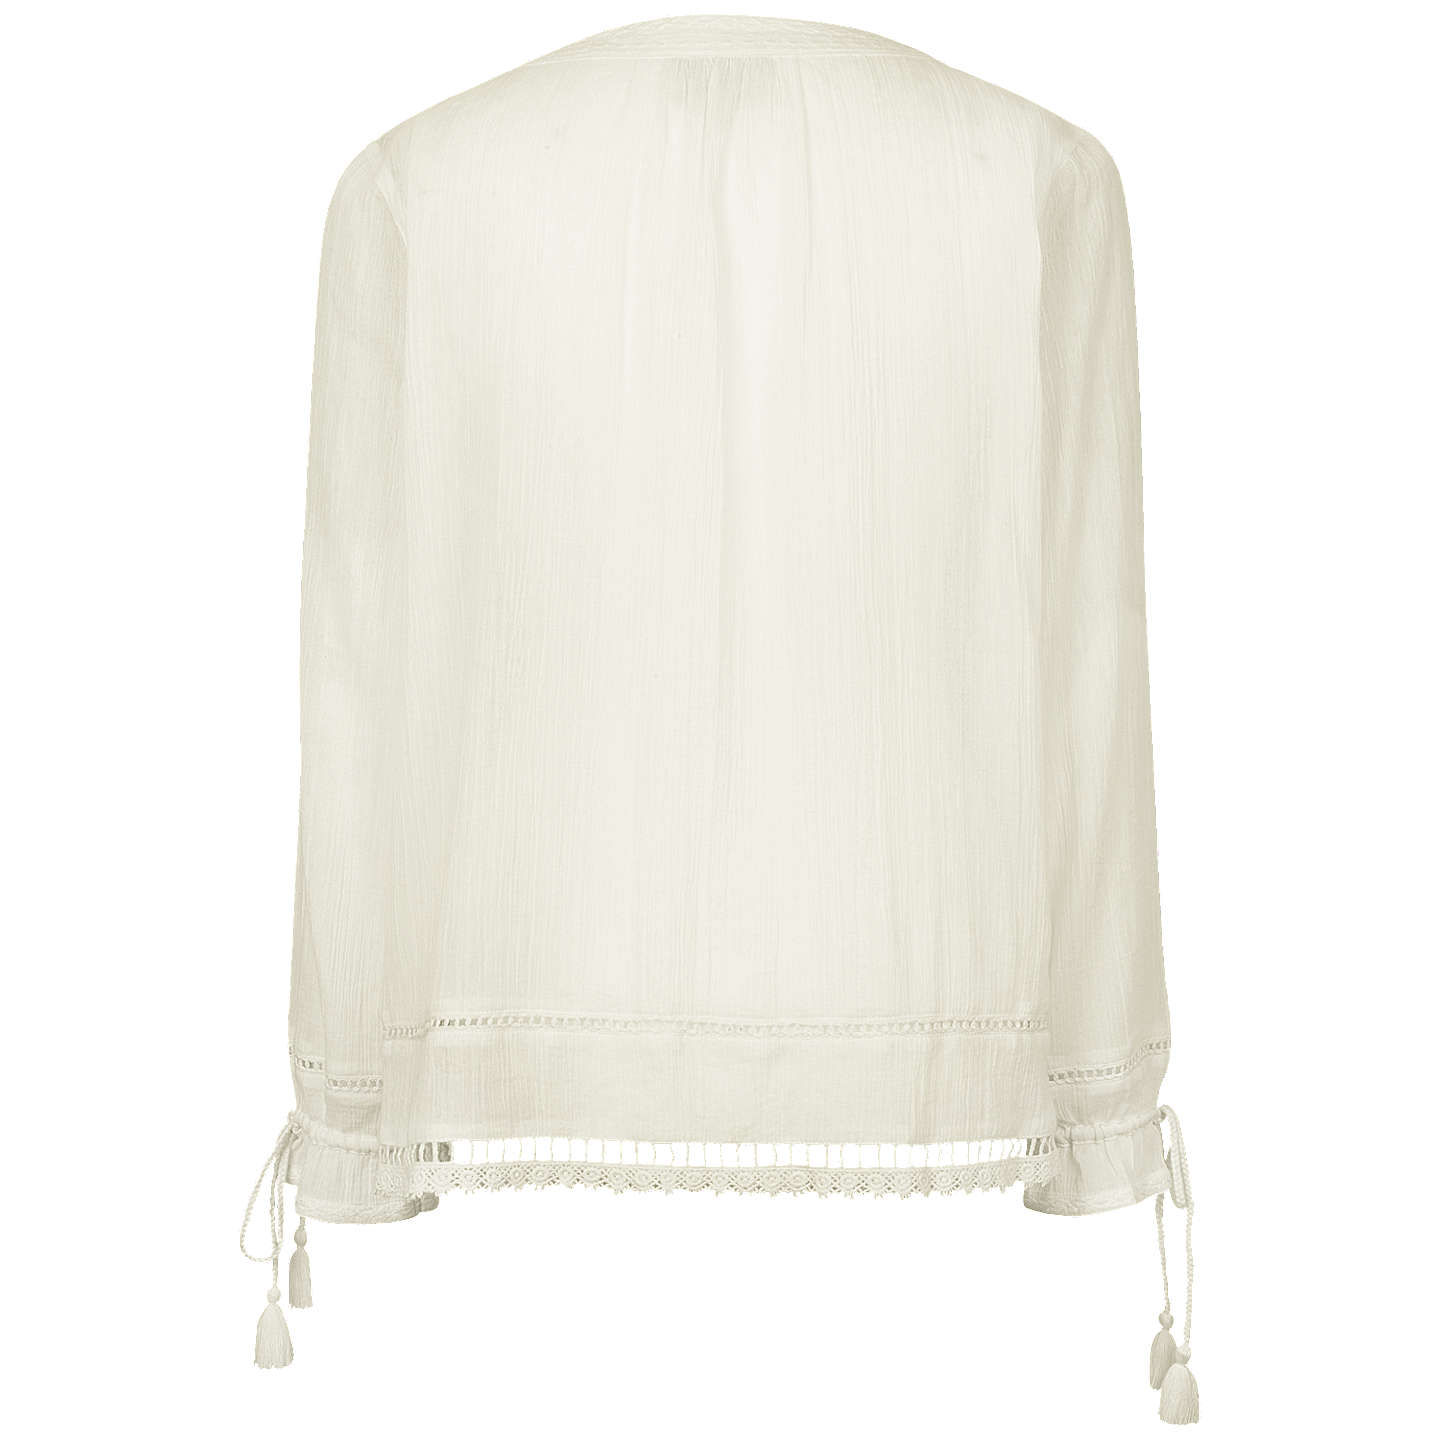 Fat Face Whitby Blouse, Ivory